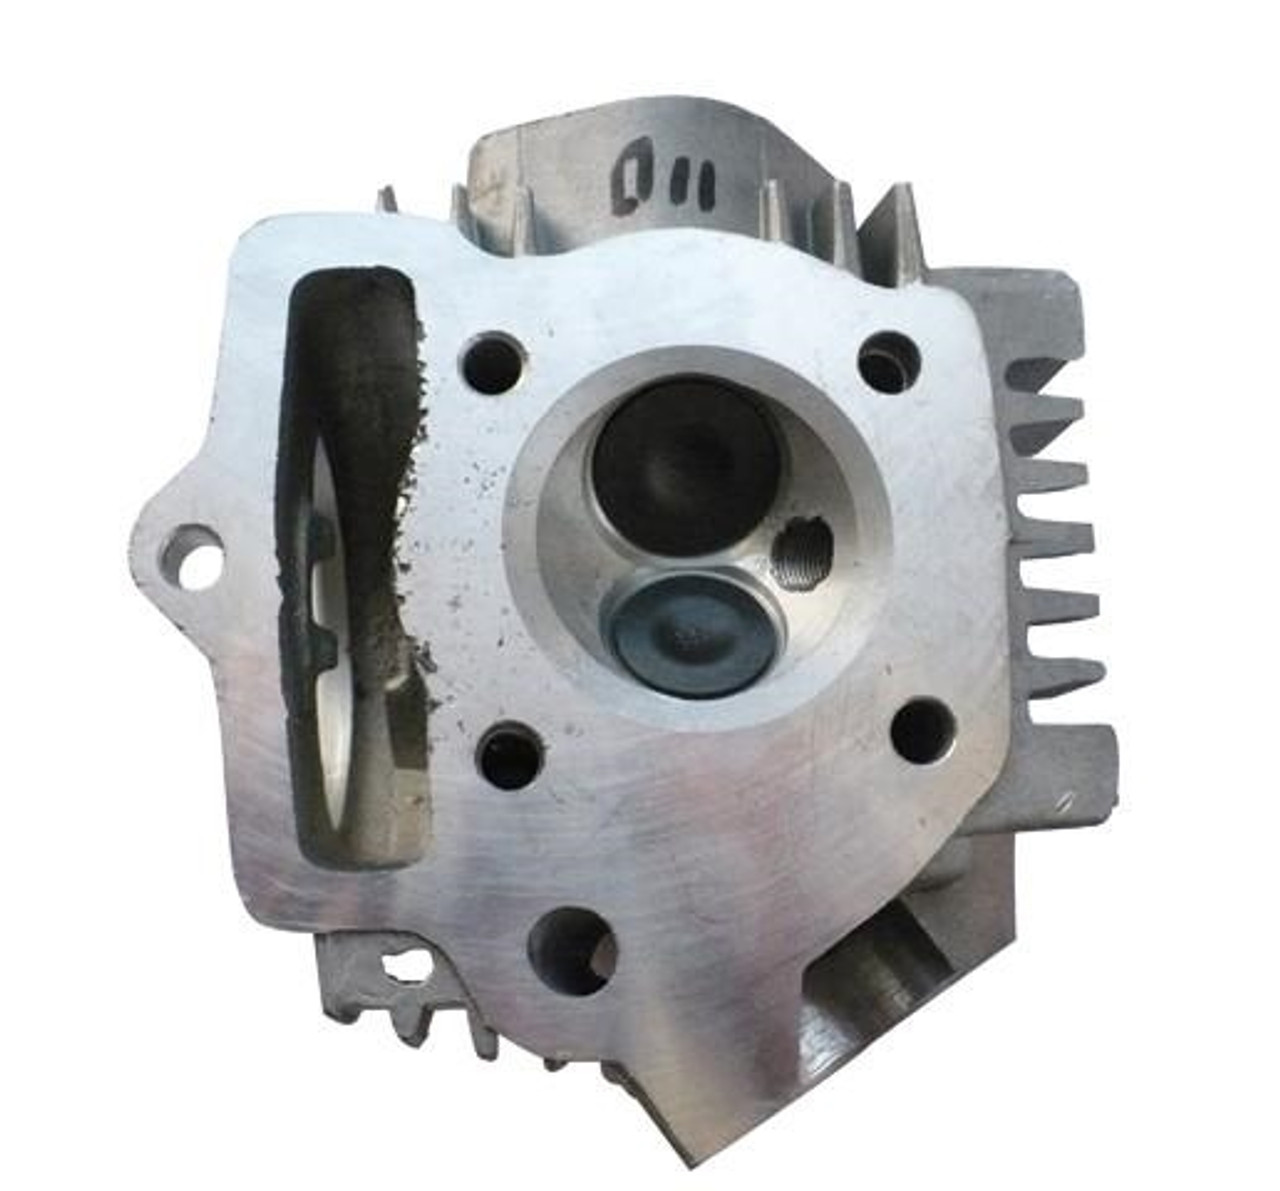 CYLINDER HEAD FOR COOLSTER DIRT BIKE 70CC